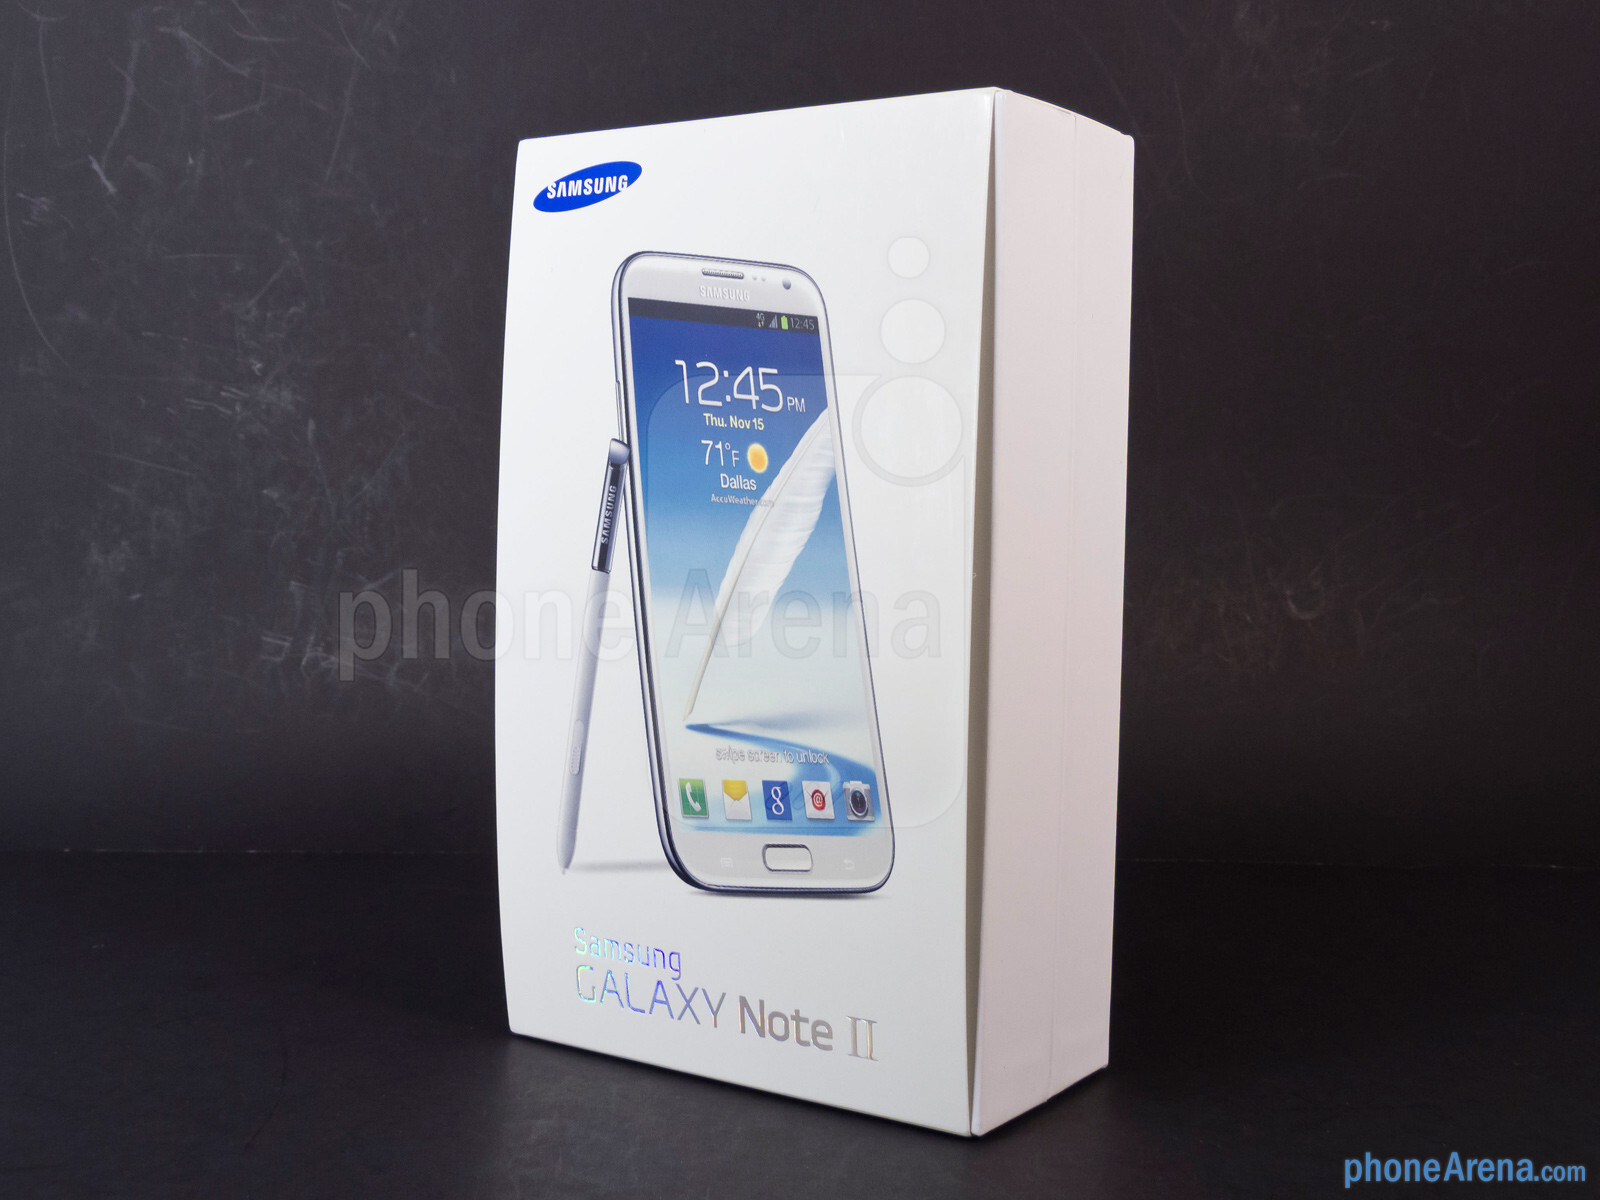 Samsung Galaxy Note Ii Review At Amp T Verizon T Mobile